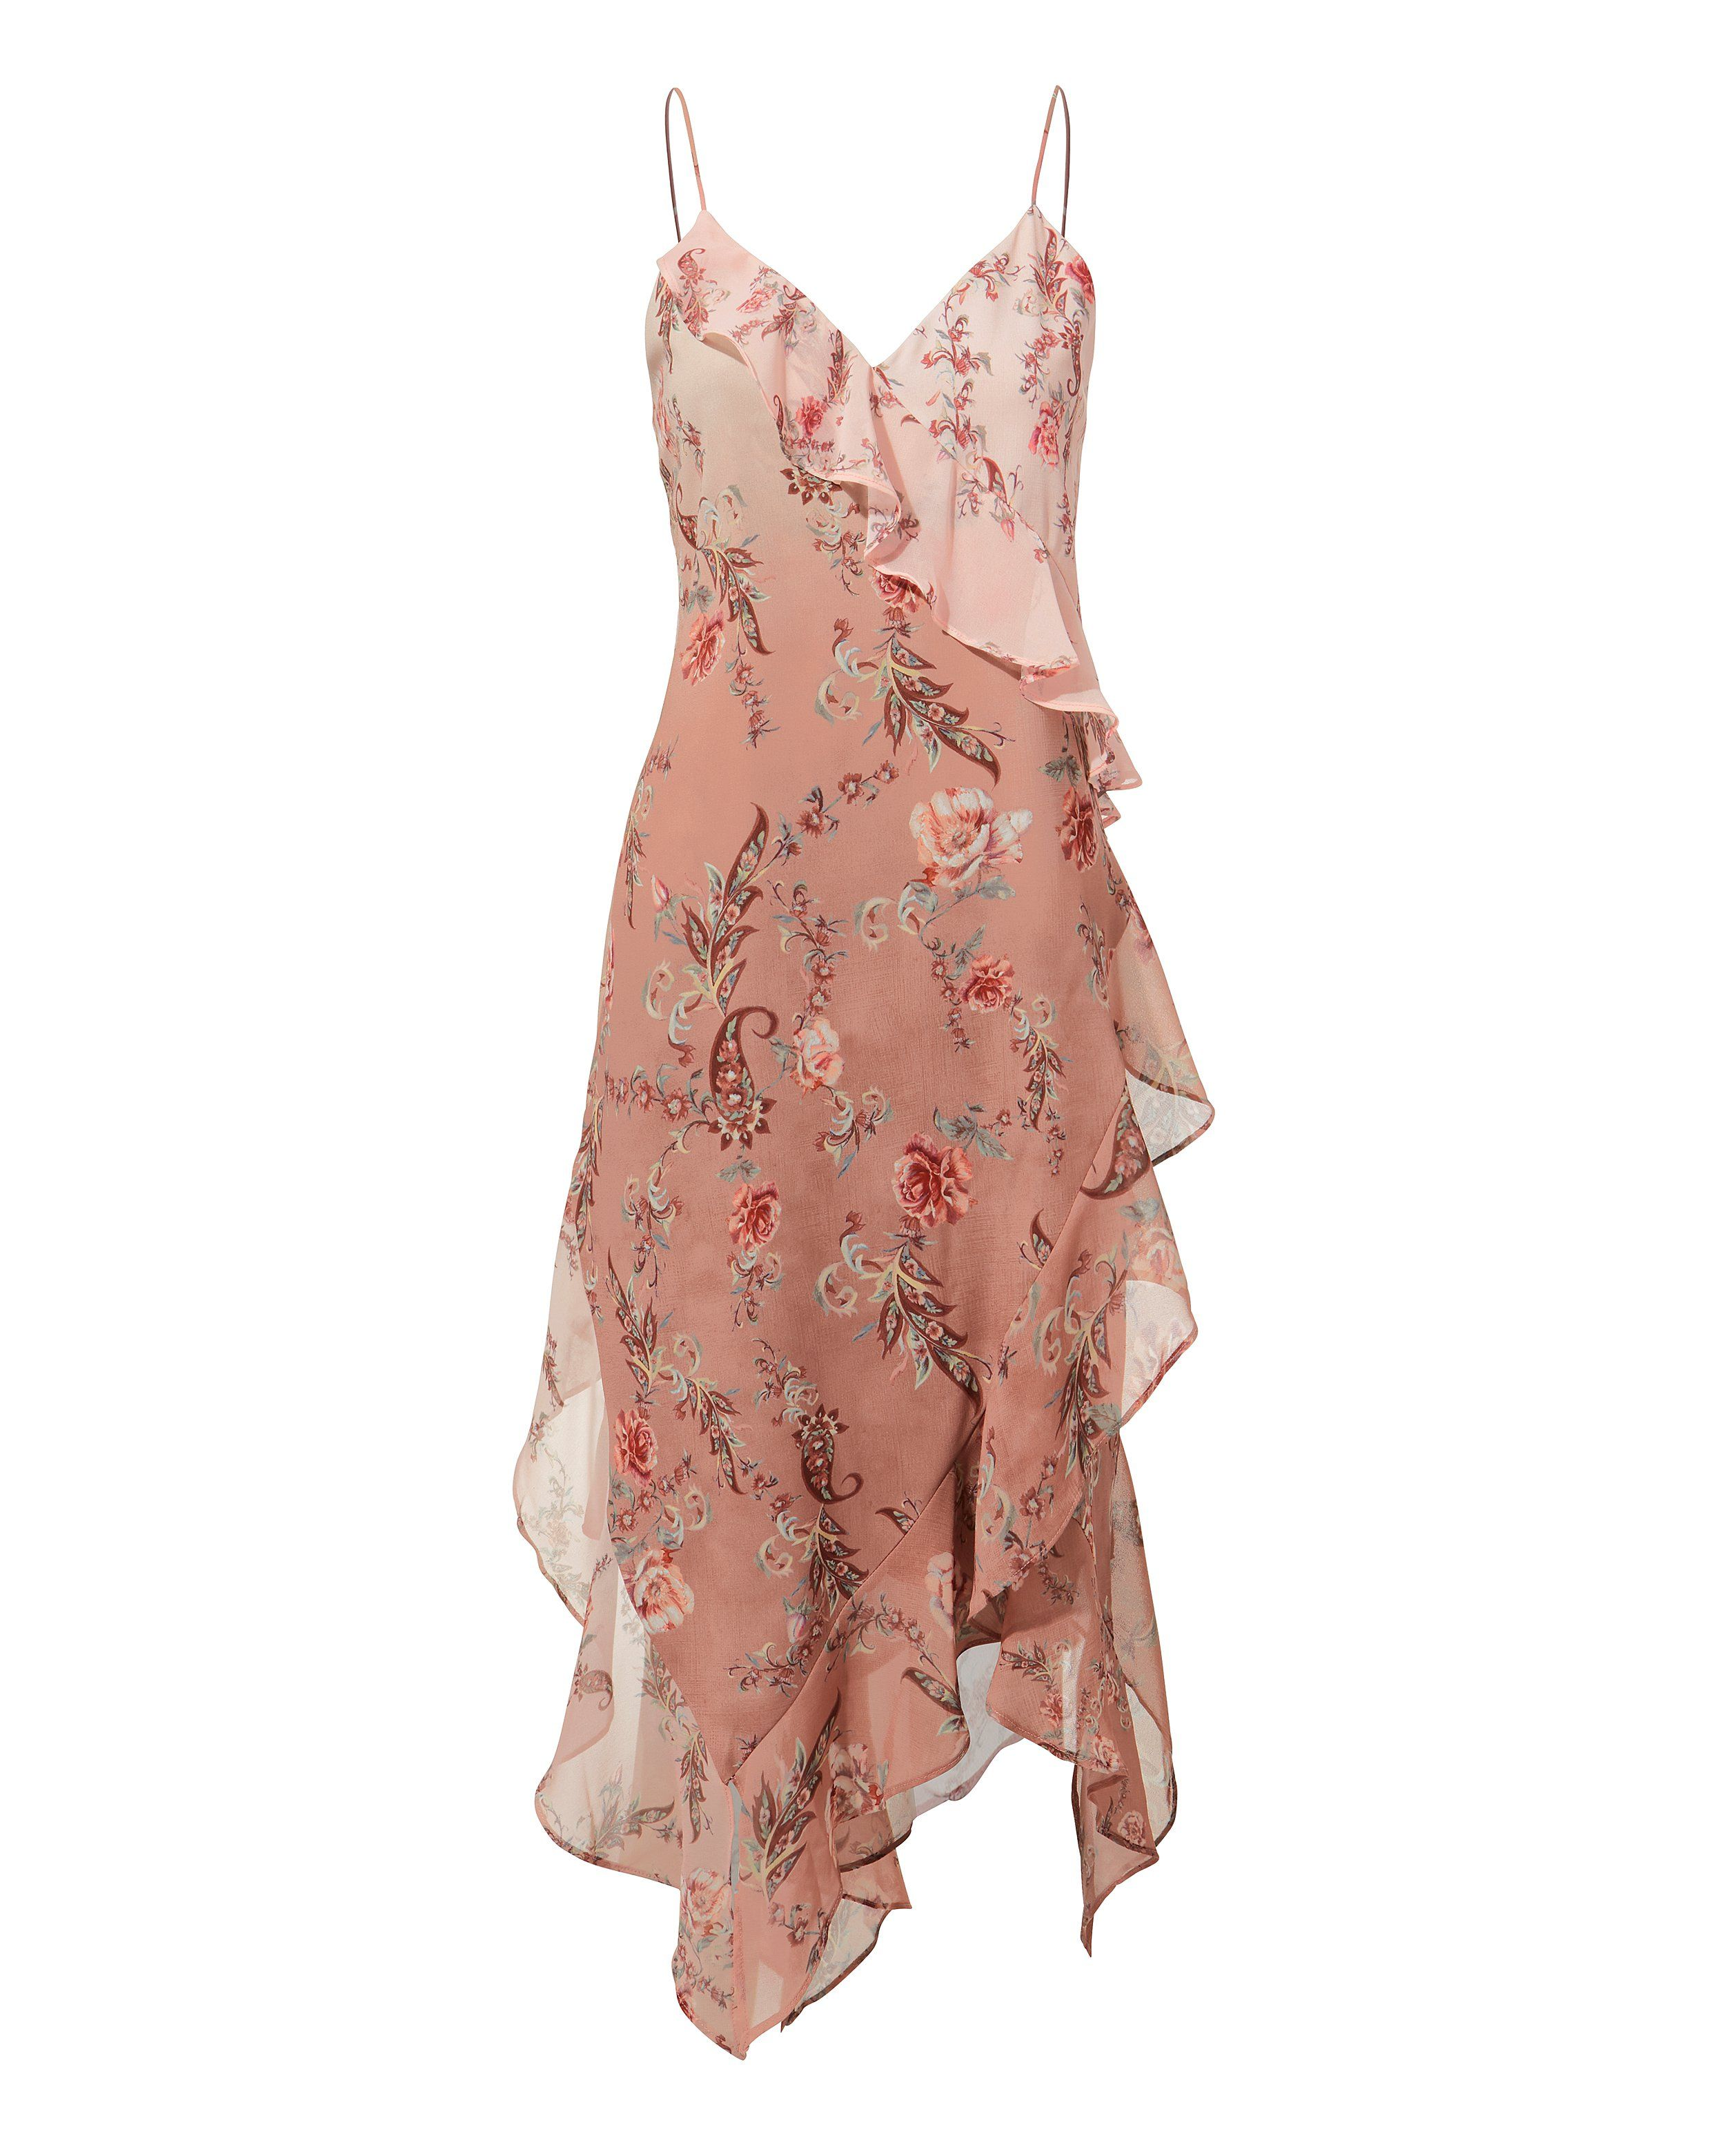 2020 Women Dress Casual Dress Print Formal Clothing Style Casual Garden Party Attire